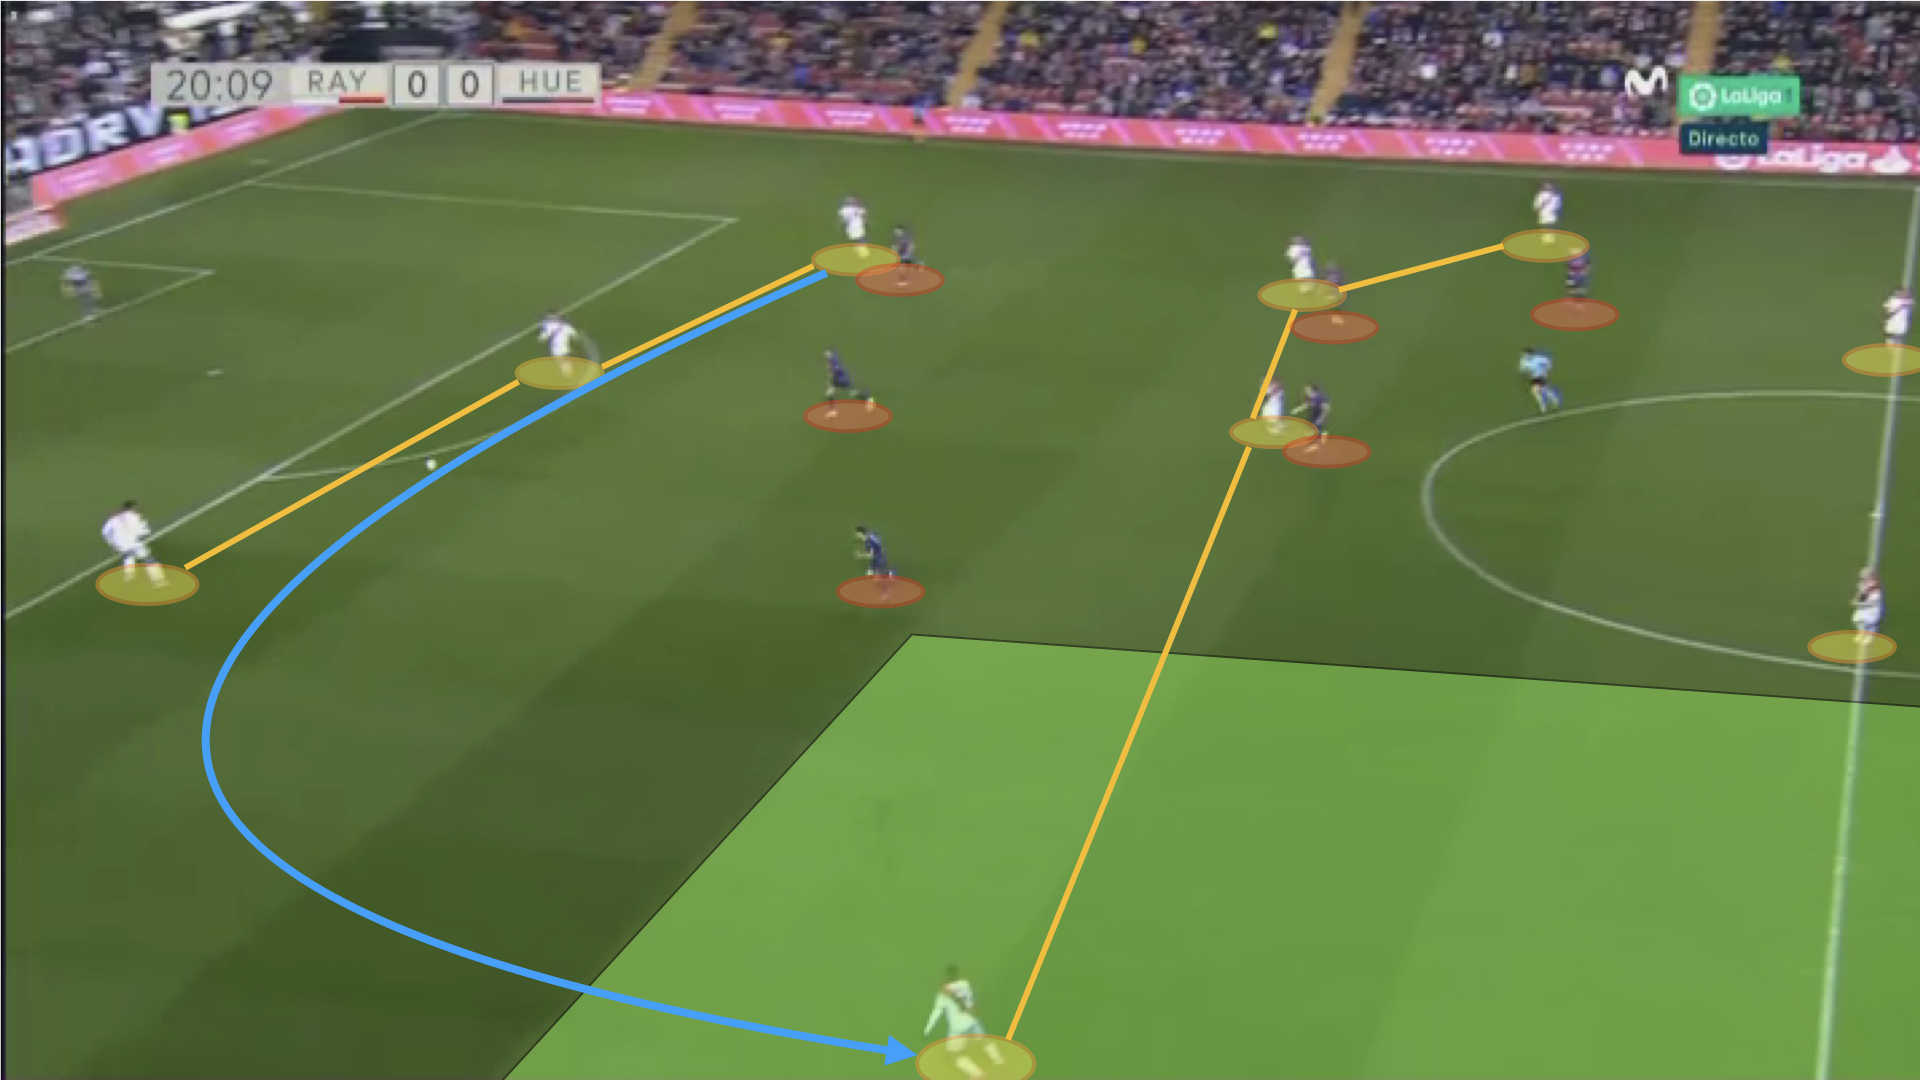 Paco Jemez at Rayo Vallecano 2019/20 - tactical analysis